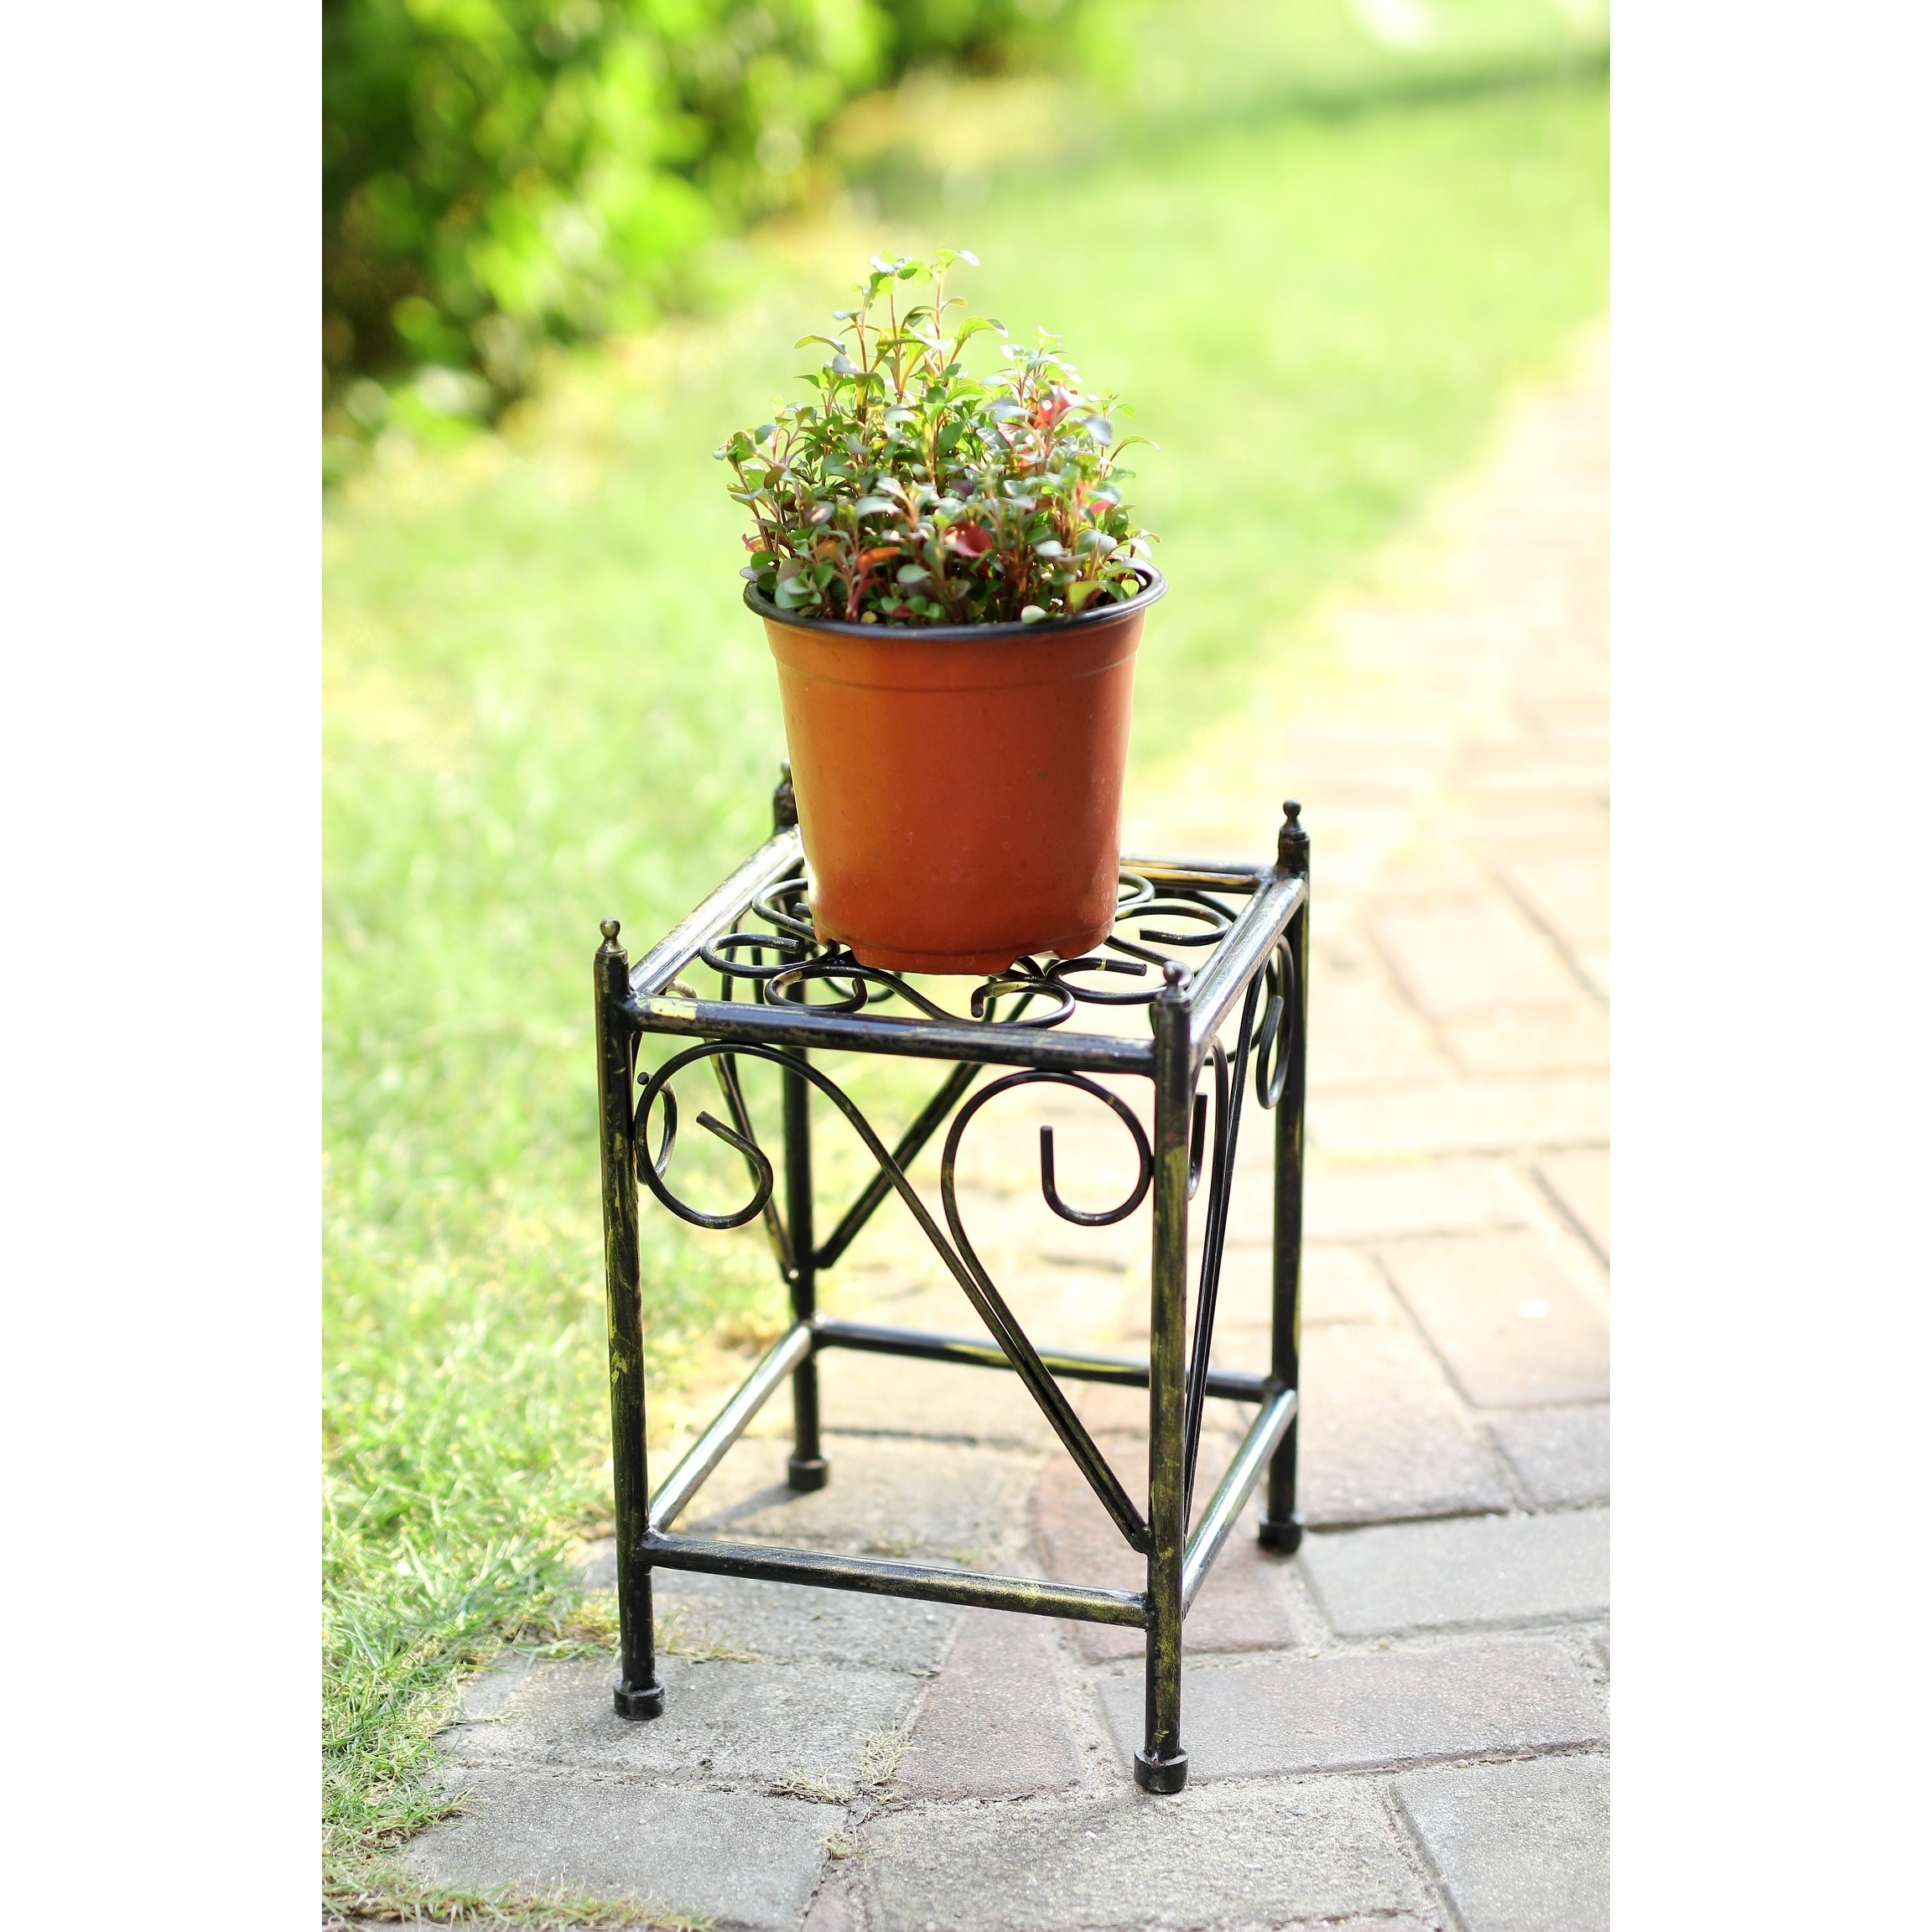 13 in Small Lattice Square Cast Iron Plant Stand, Black (...